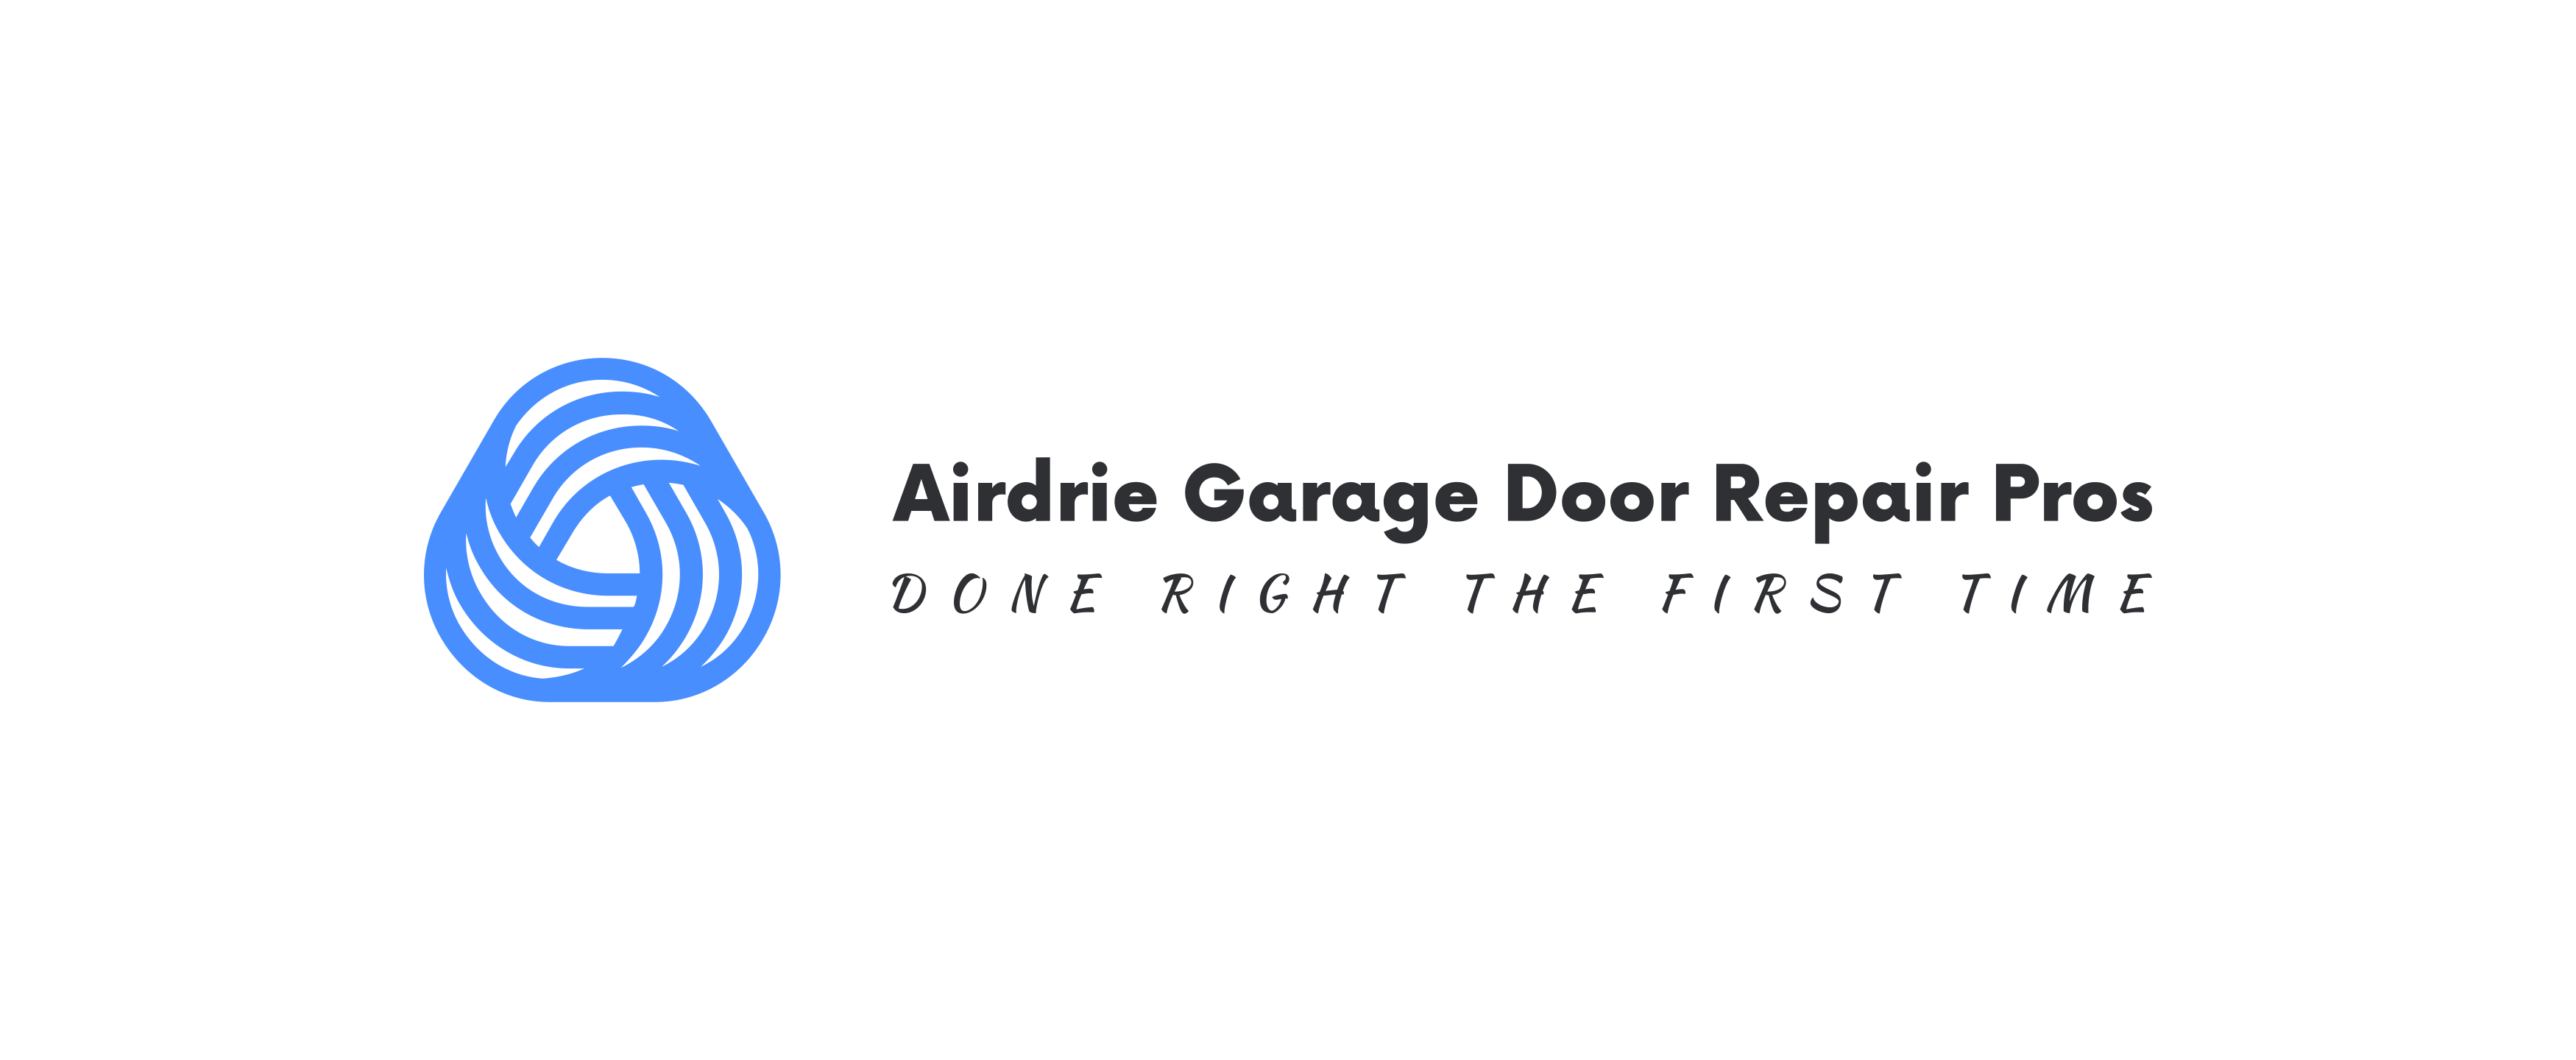 At Airdrie Garage Door Repair Pros We Are Your One Stop Shop For All Your Repair Or Replacement Needs Fast Frien Garage Door Repair Garage Doors Overhead Door